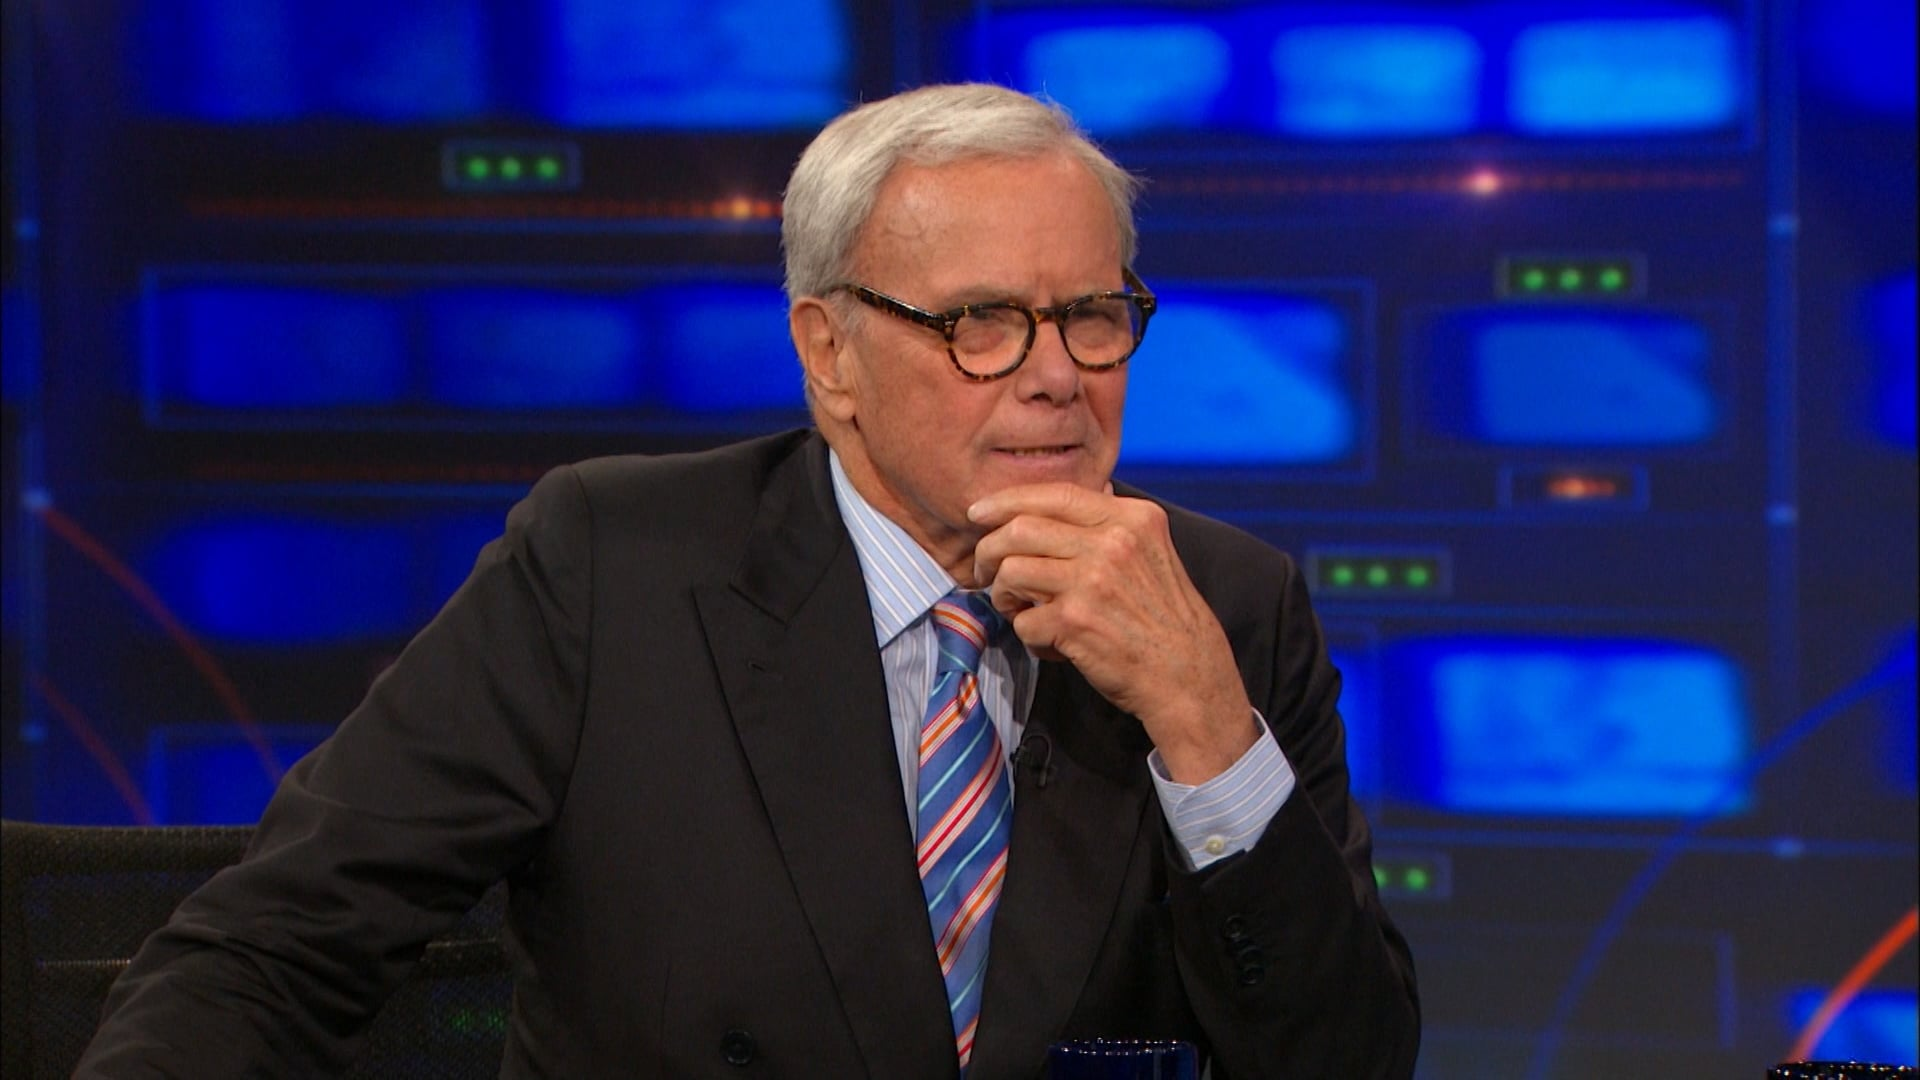 The Daily Show with Trevor Noah - Season 20 Episode 105 : Tom Brokaw (1970)